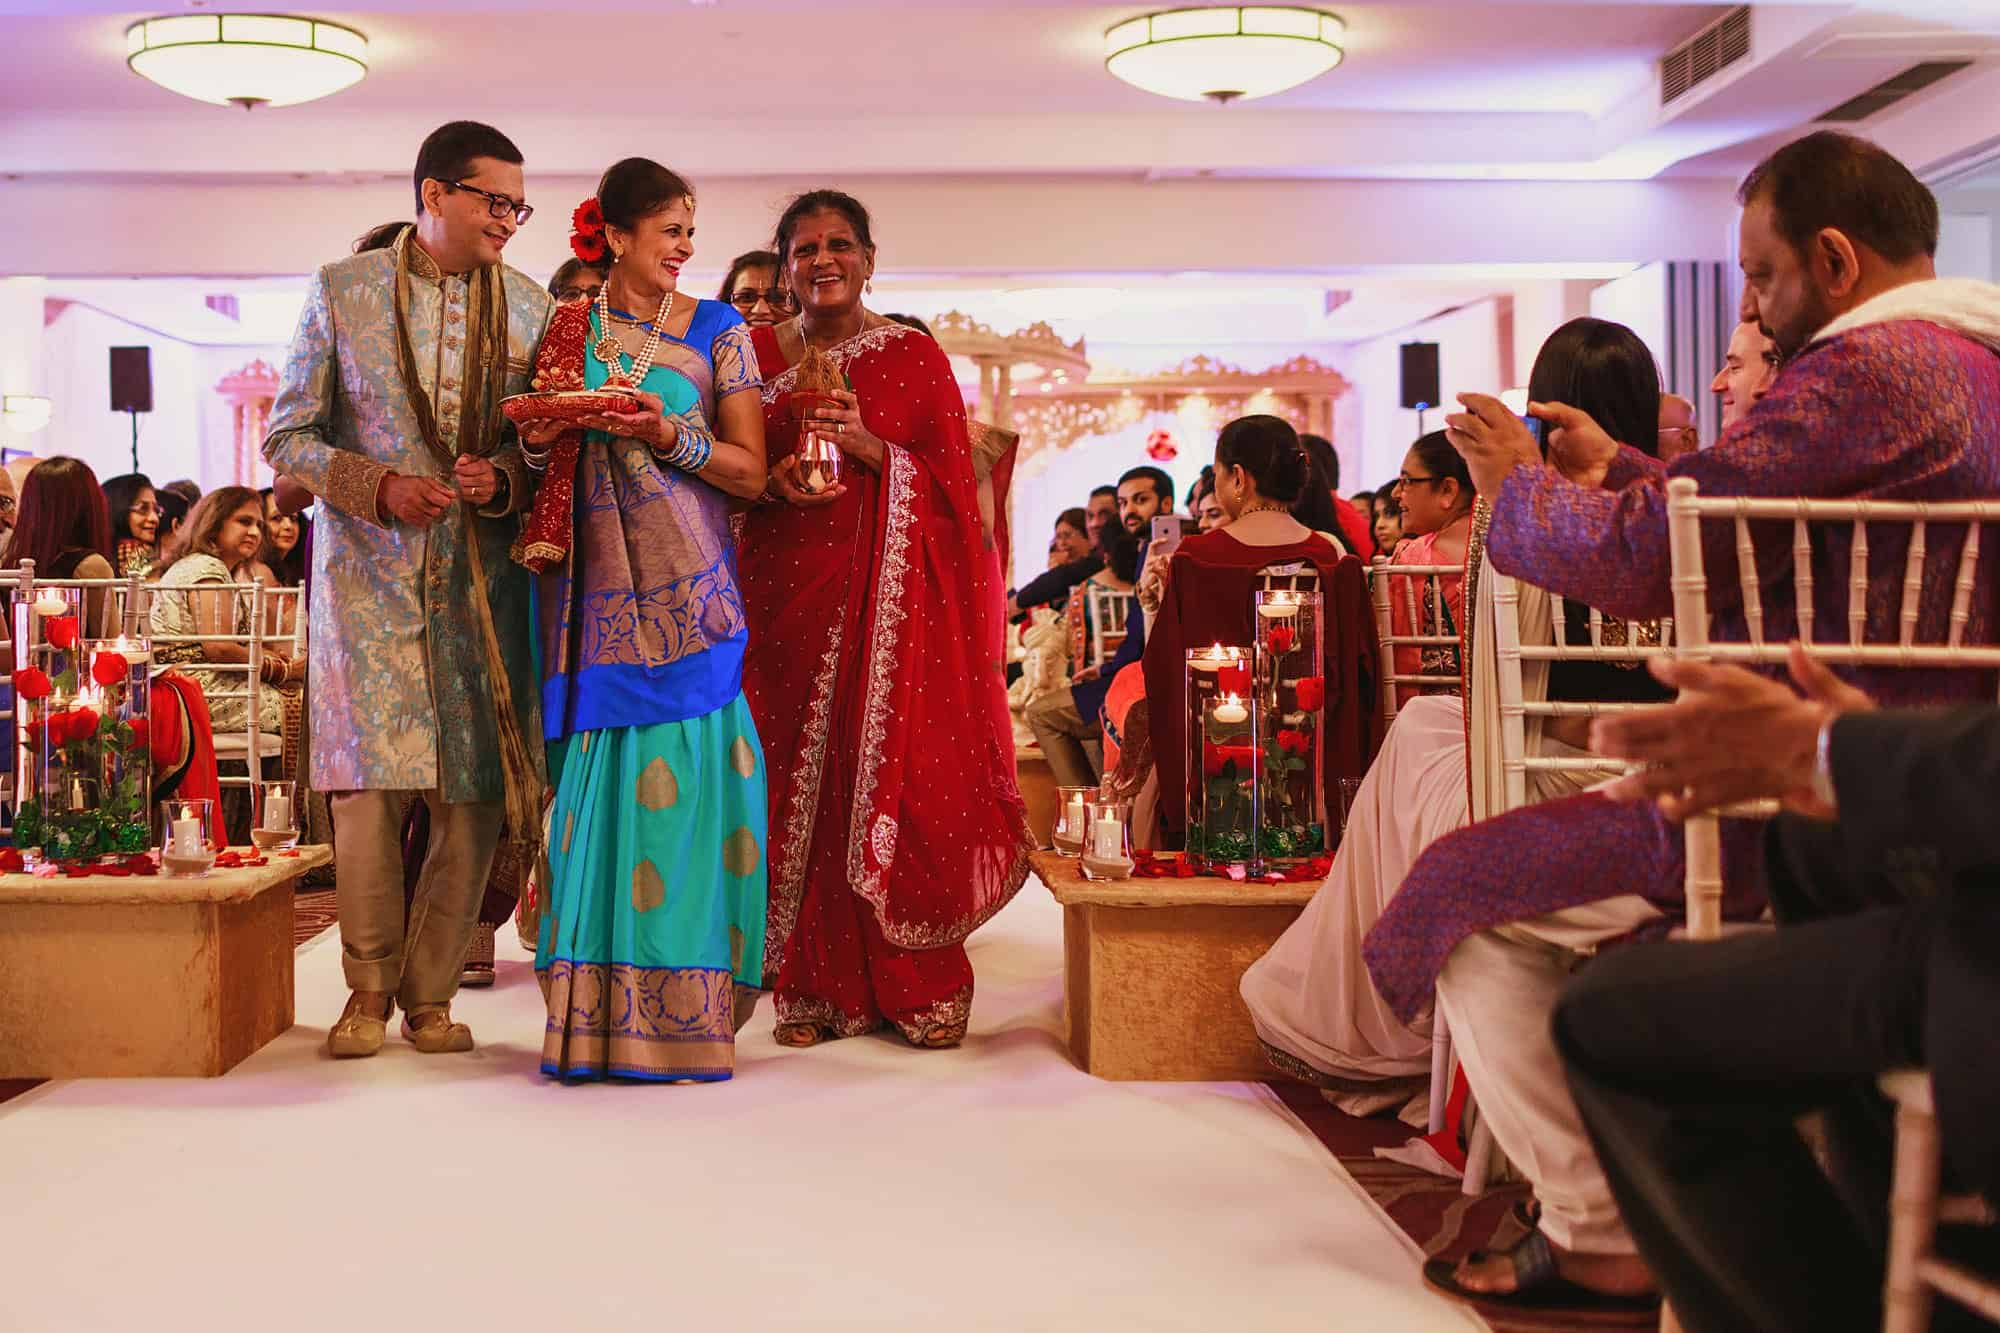 oatlands park hindu wedding